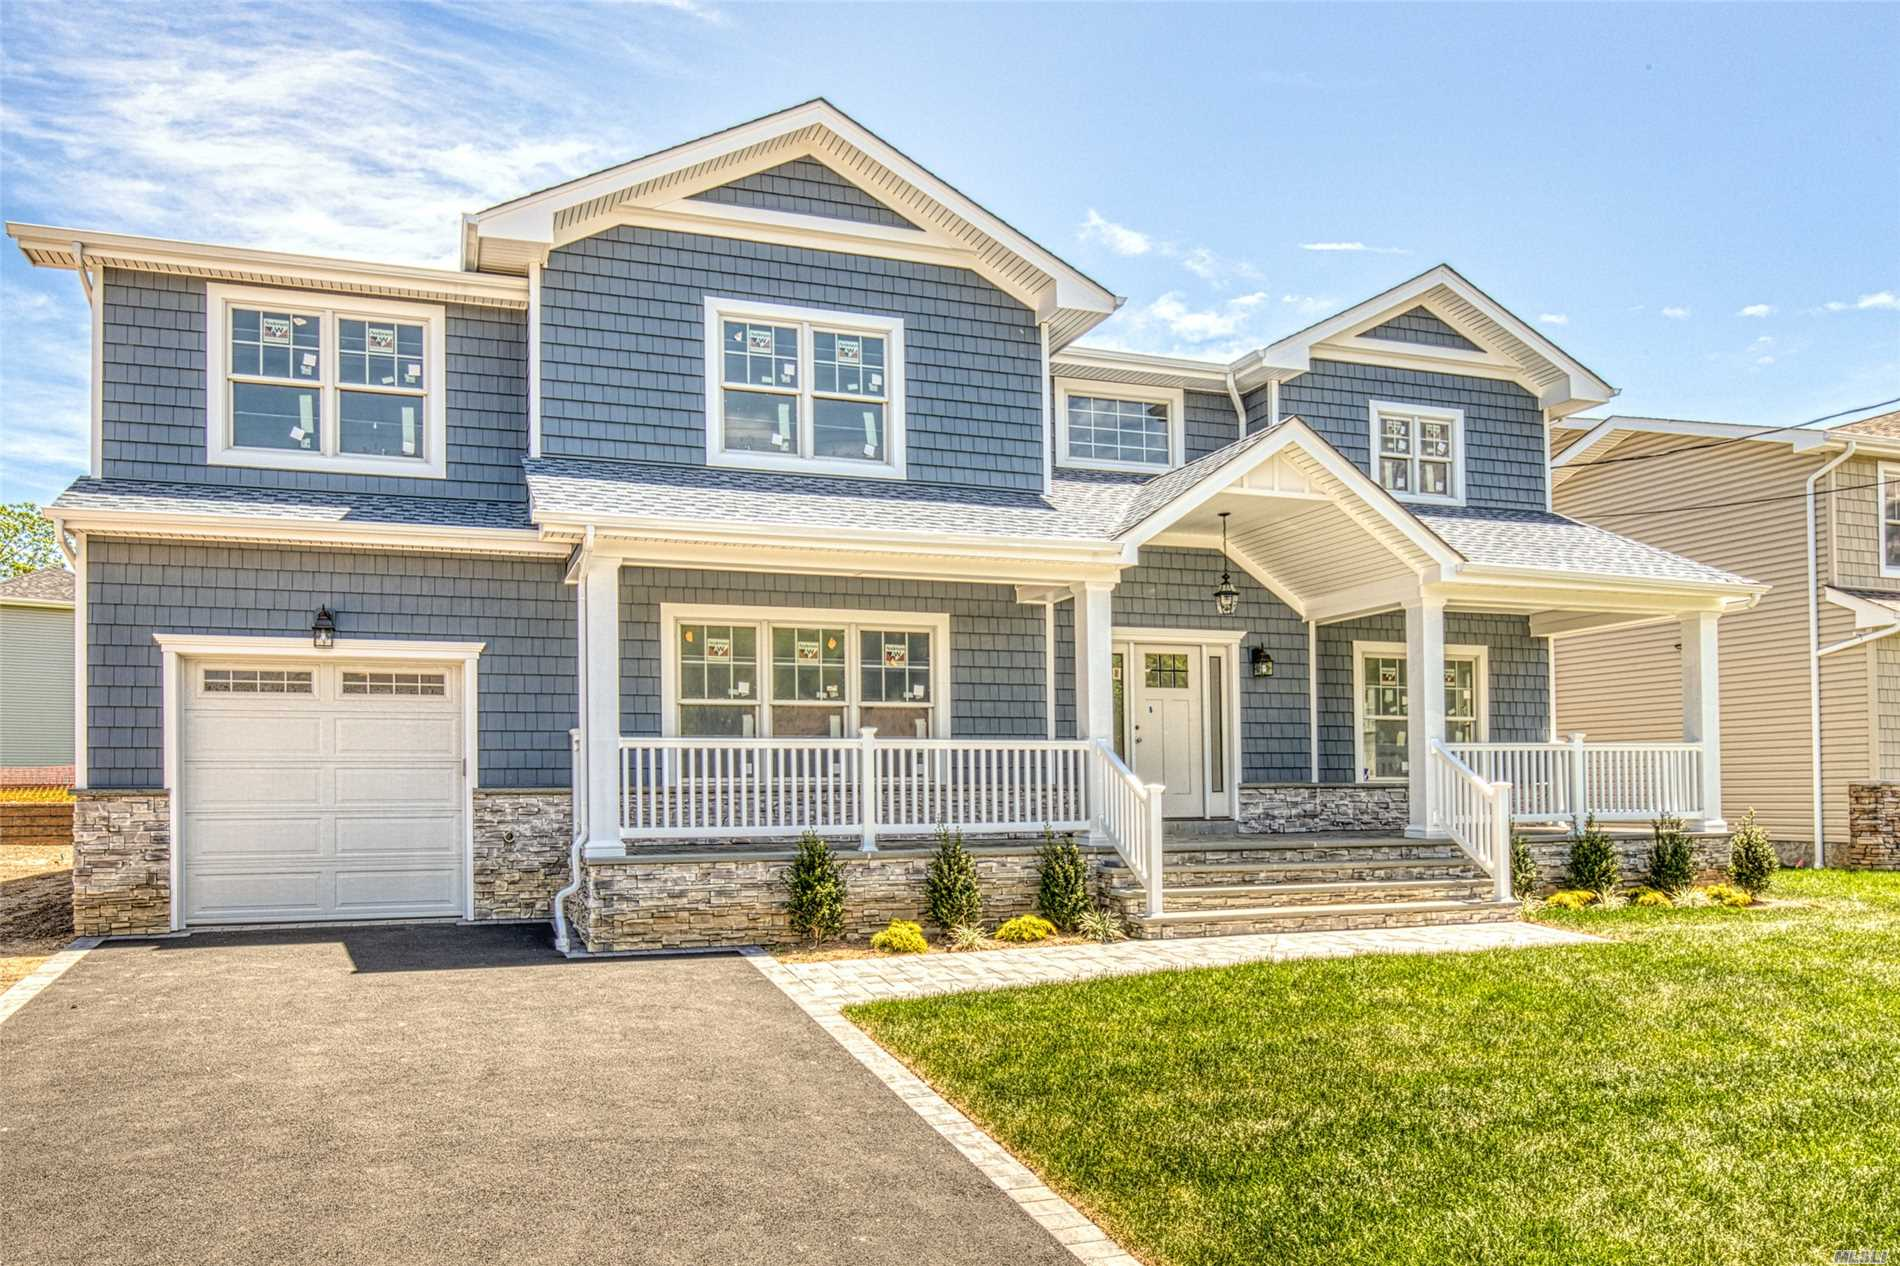 Photo of home for sale at 760 Hempstead Ave, West Hempstead NY